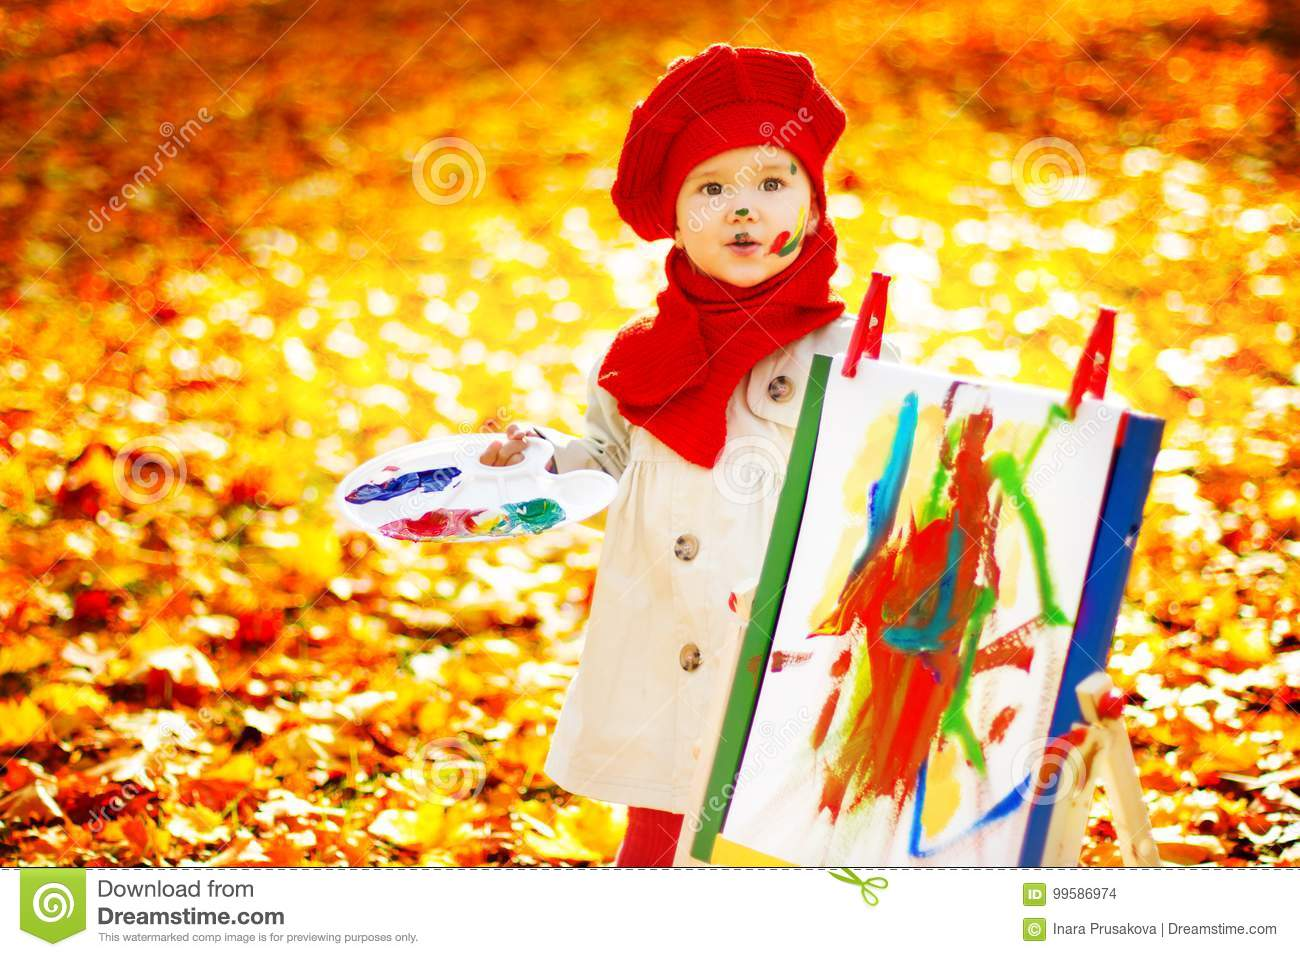 Autumn Child Painting Art Picture, Kid Artist Drawing Fall Leave